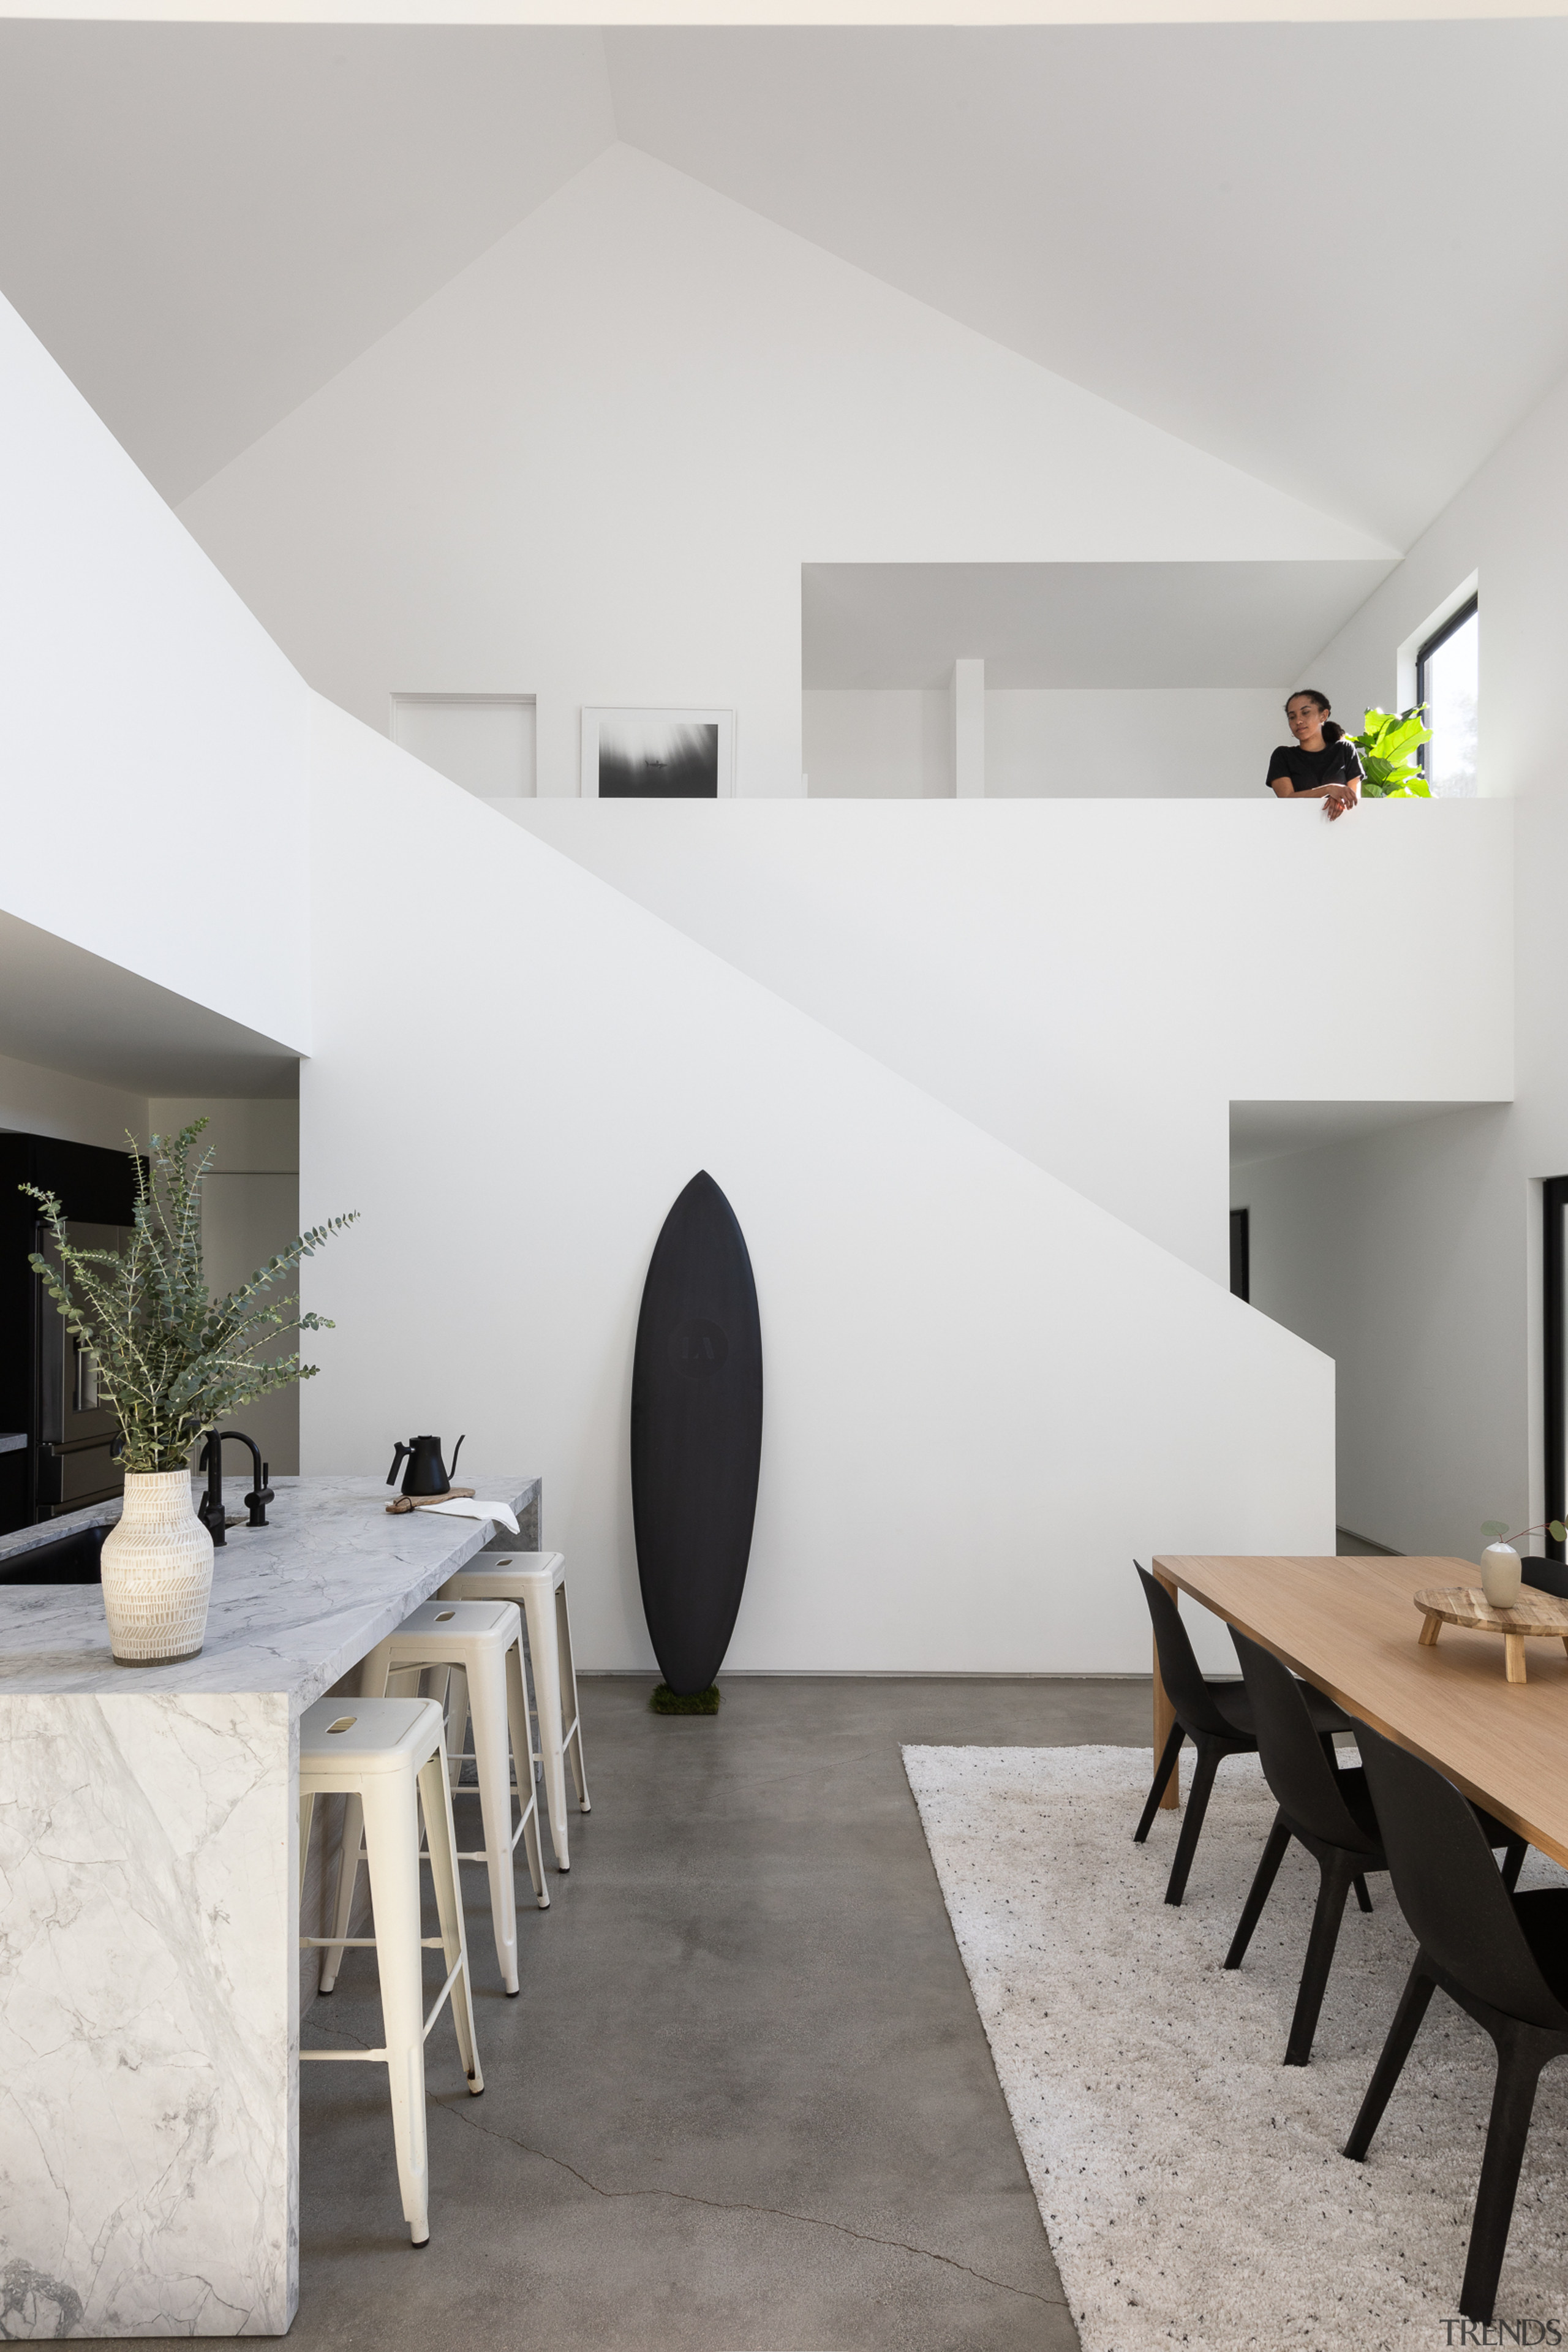 The home is organised around a light-filled double-height